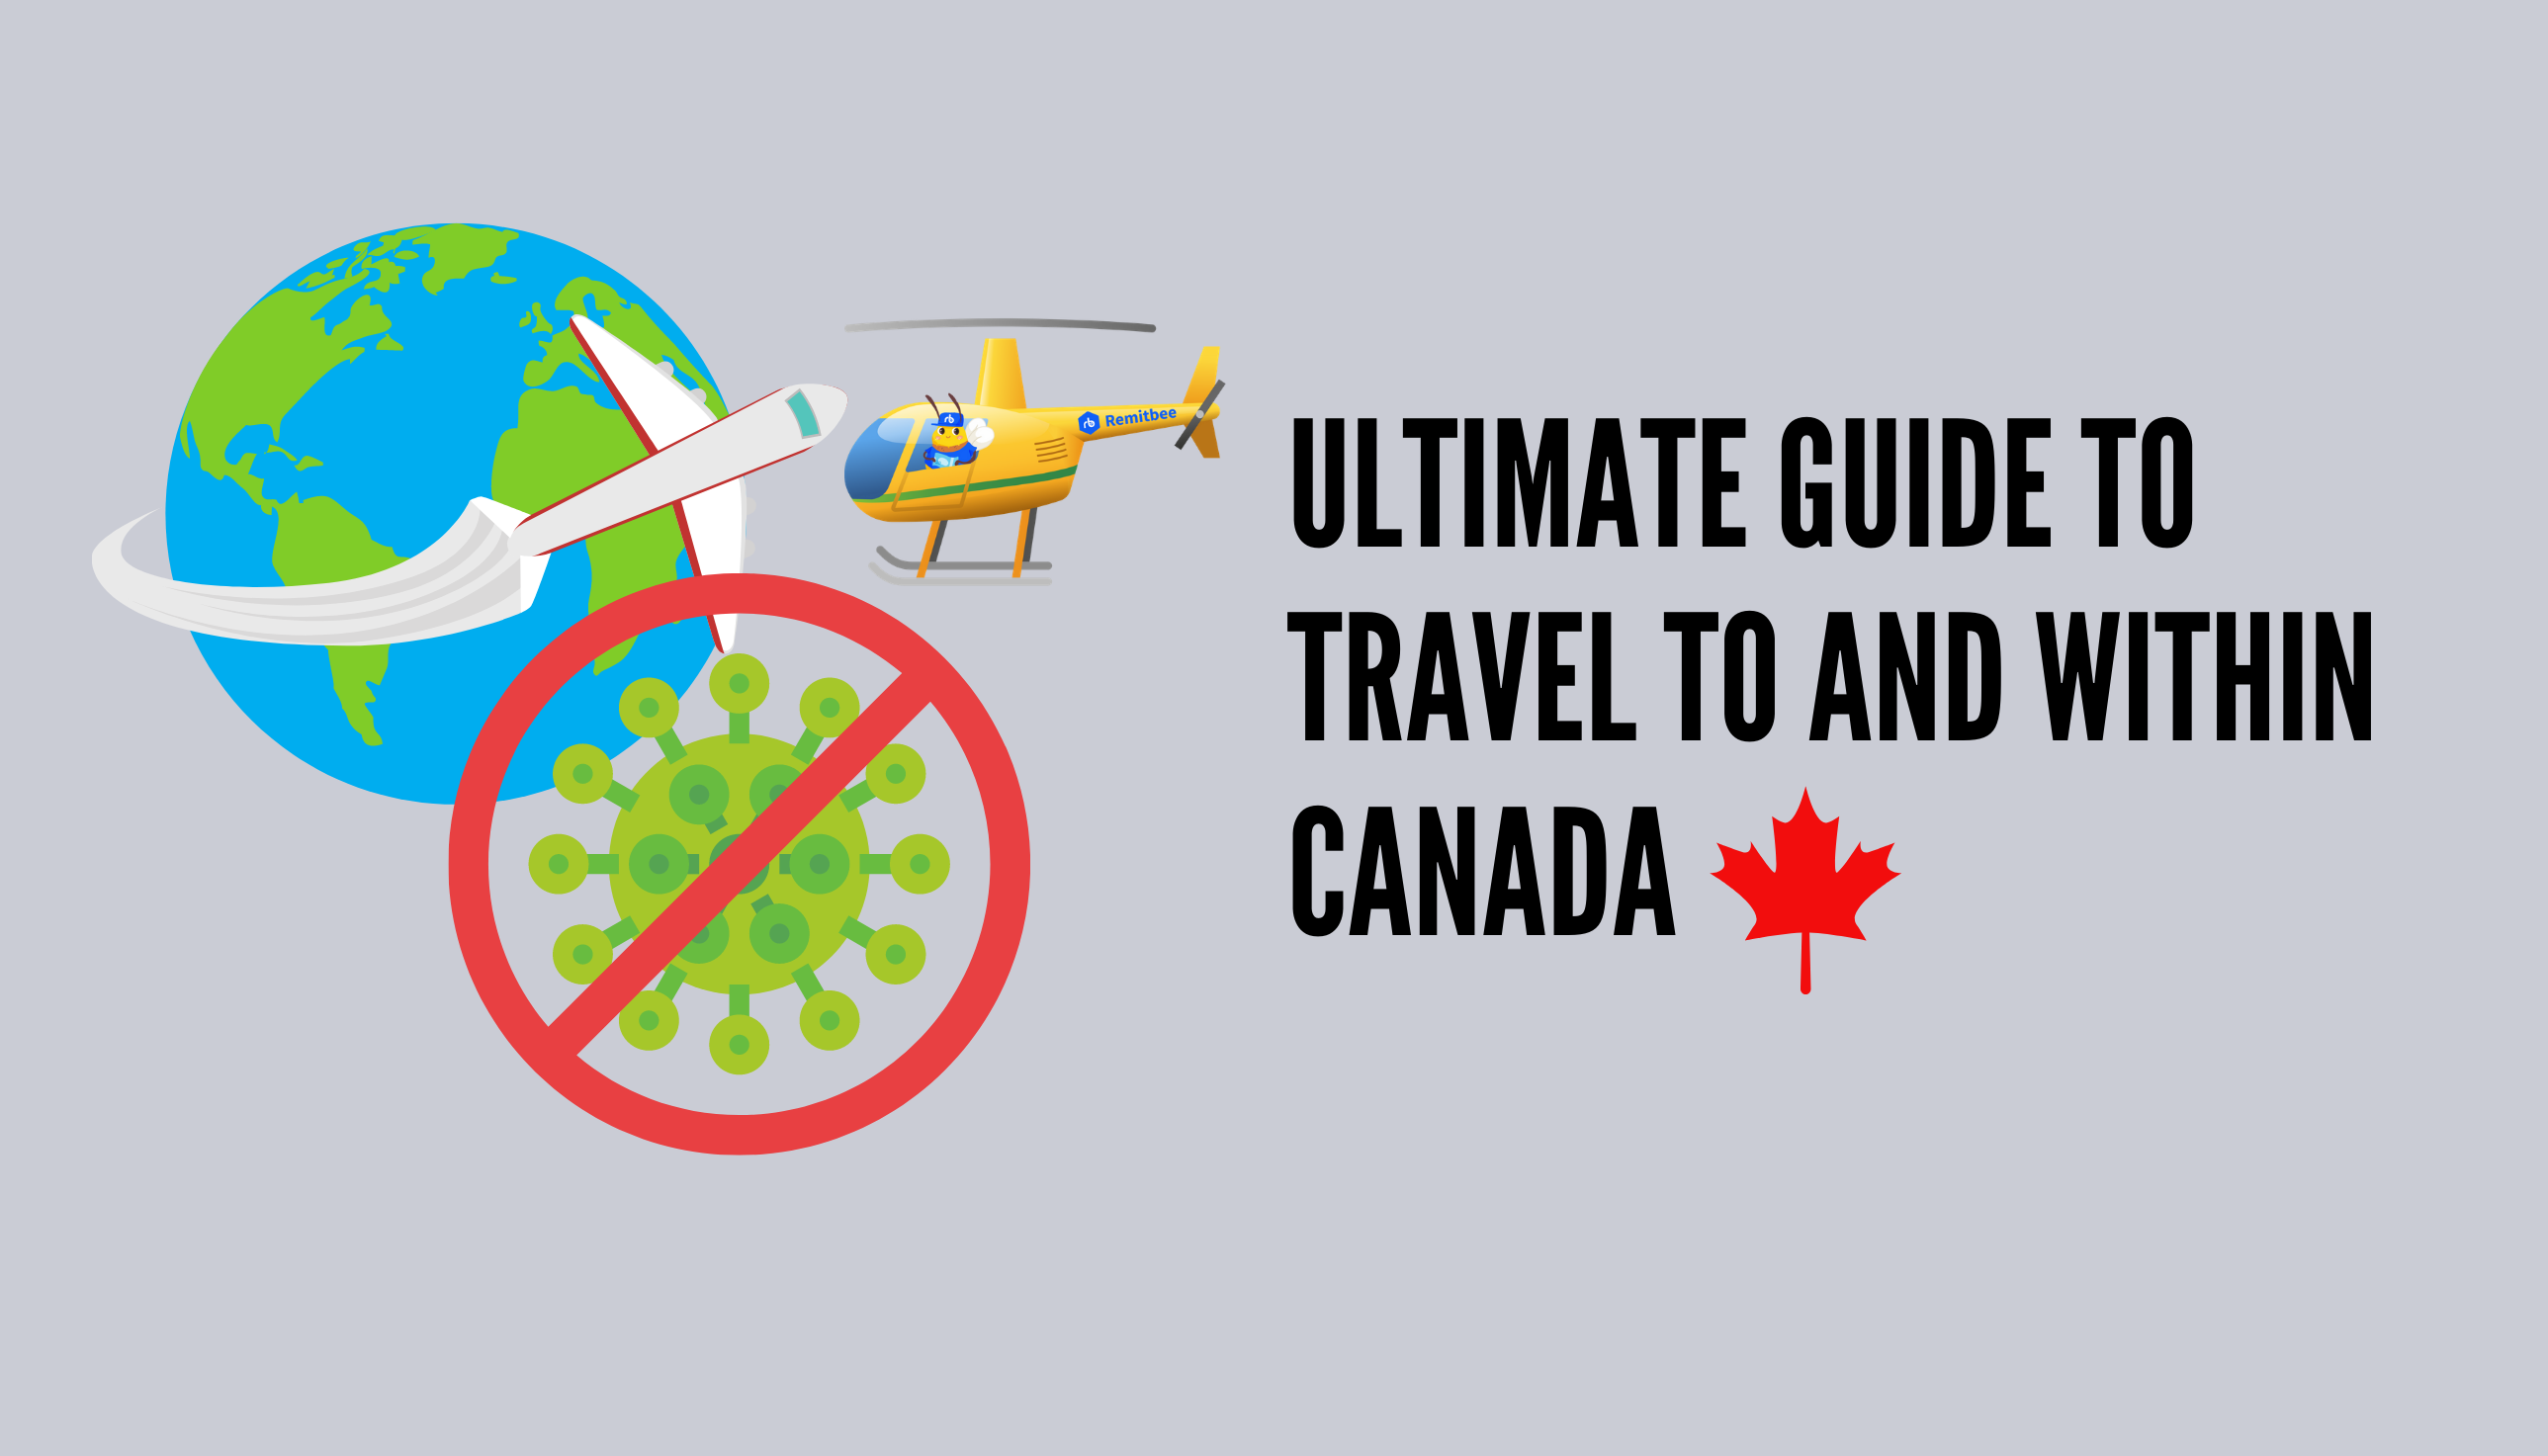 Complete Rules for traveling to and within Canada and timeline of all rule changes